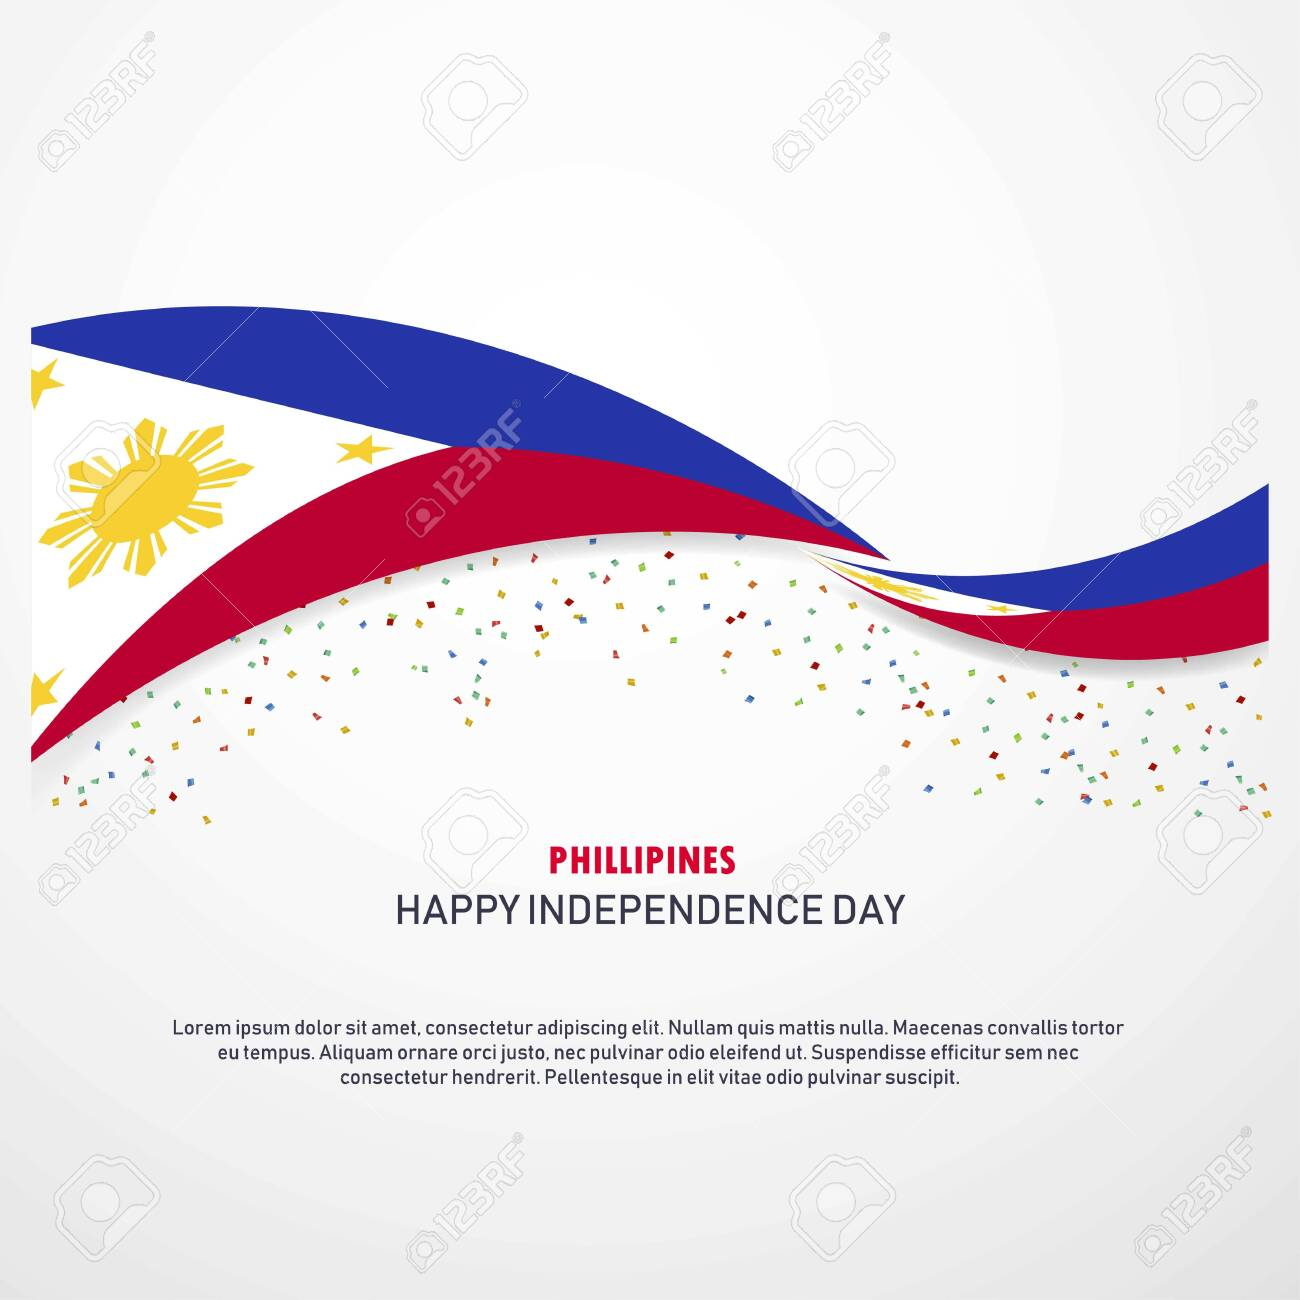 Phillipines Happy independence day Background - 118264307